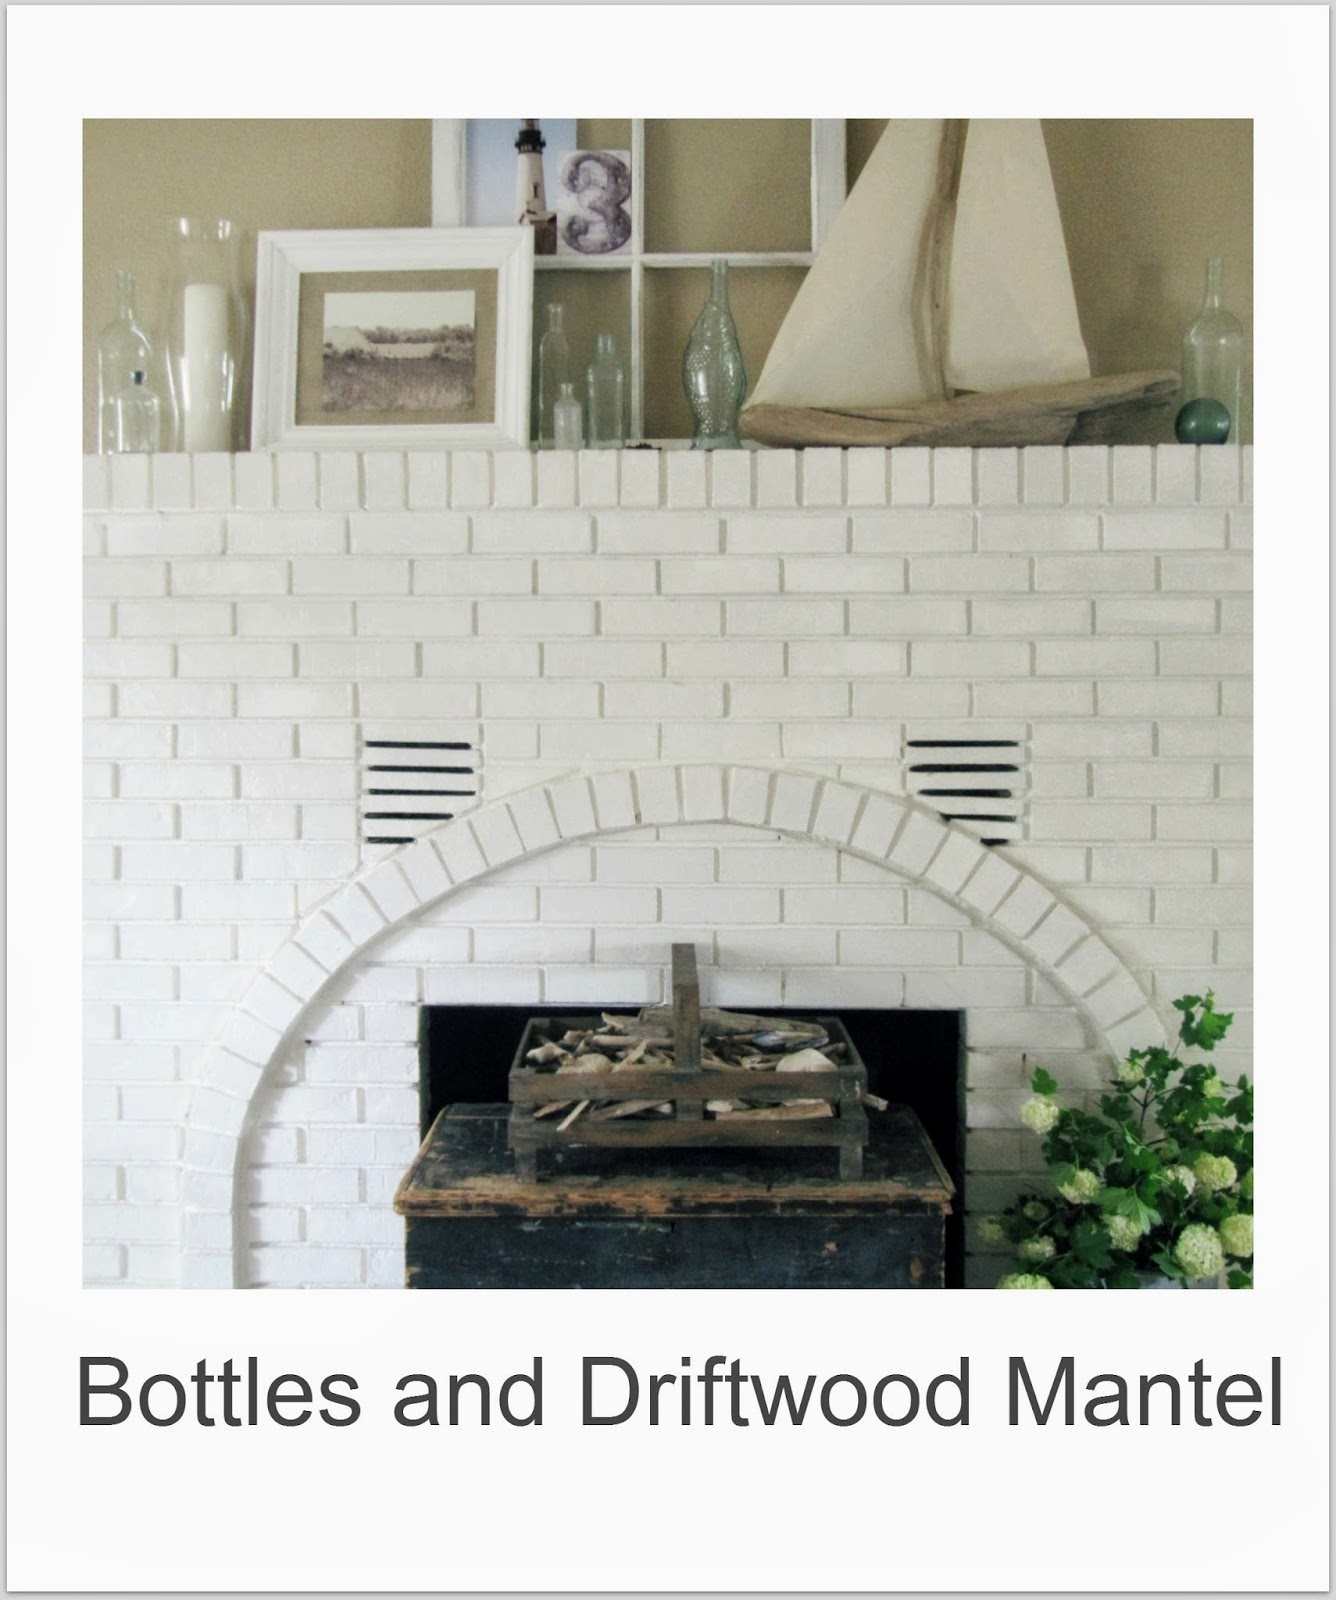 http://thewickerhouse.blogspot.com/2012/05/bottles-and-driftwood-mantel.html